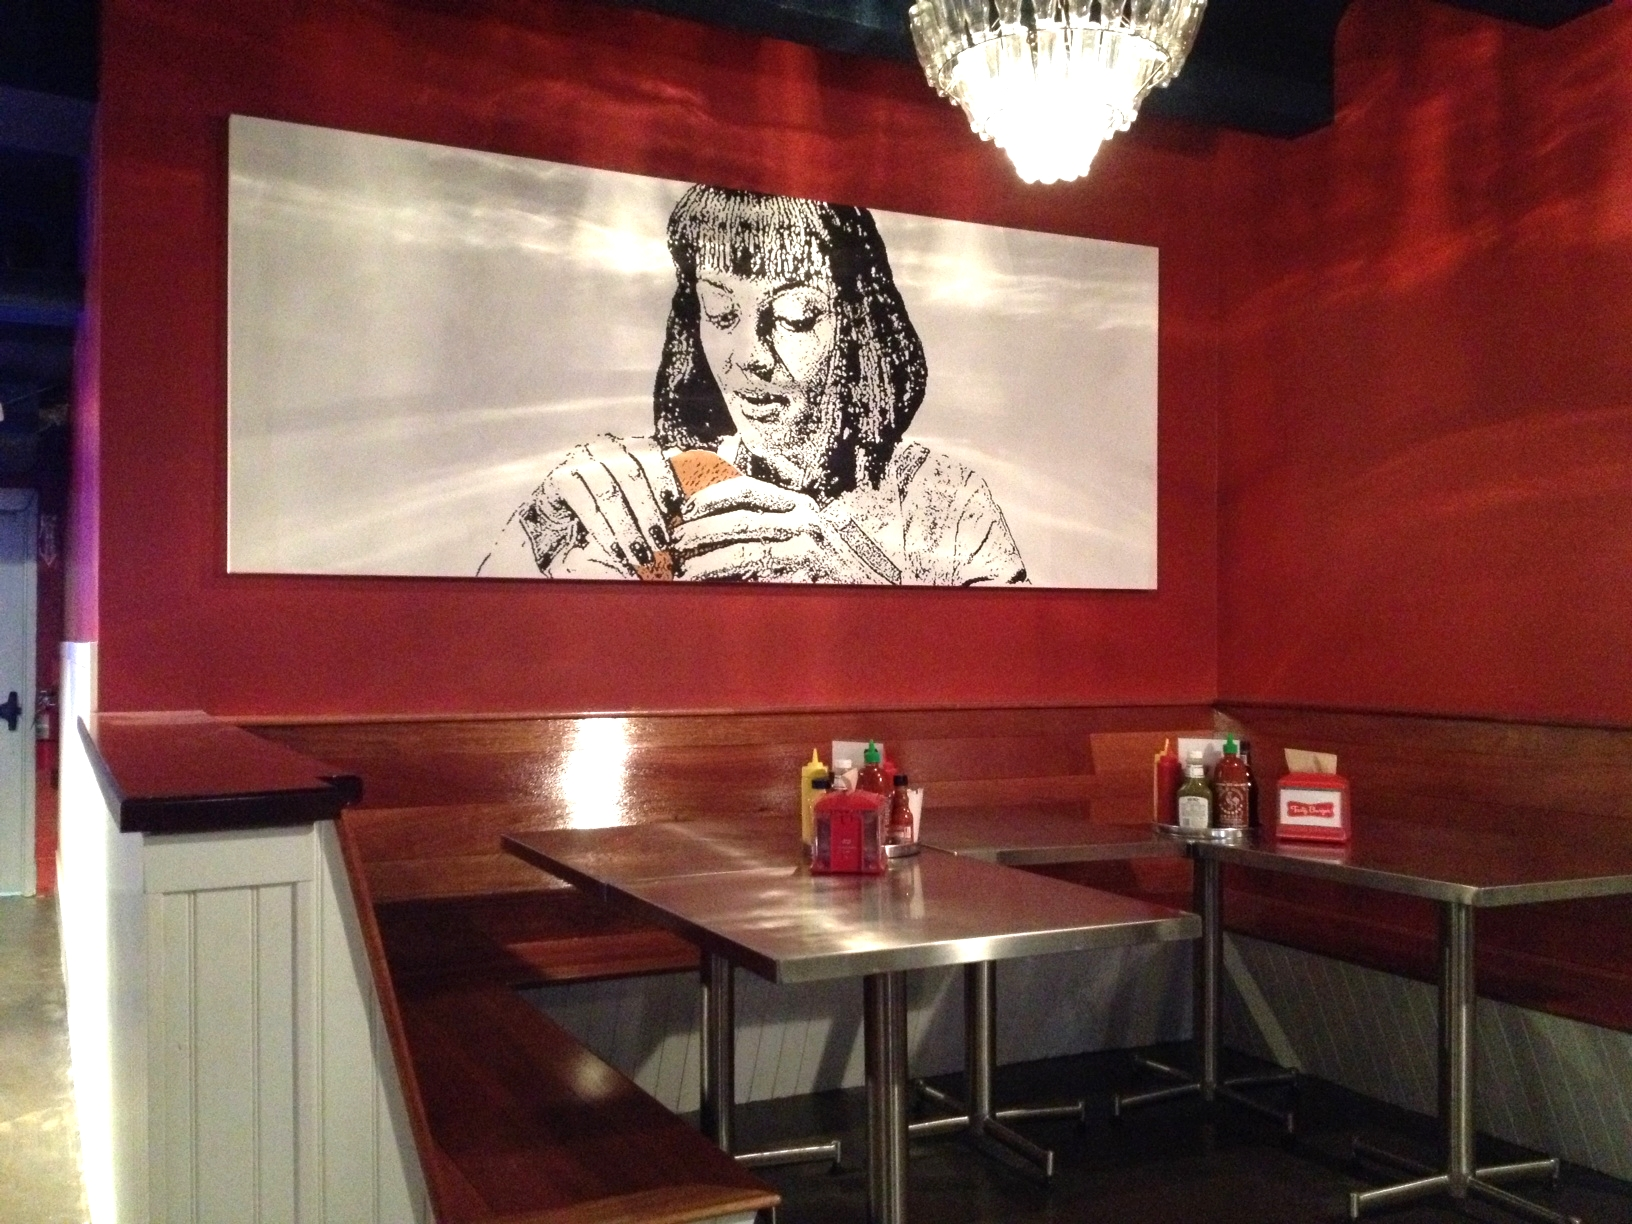 Commissioned painting for Tasty Burger Restaurant